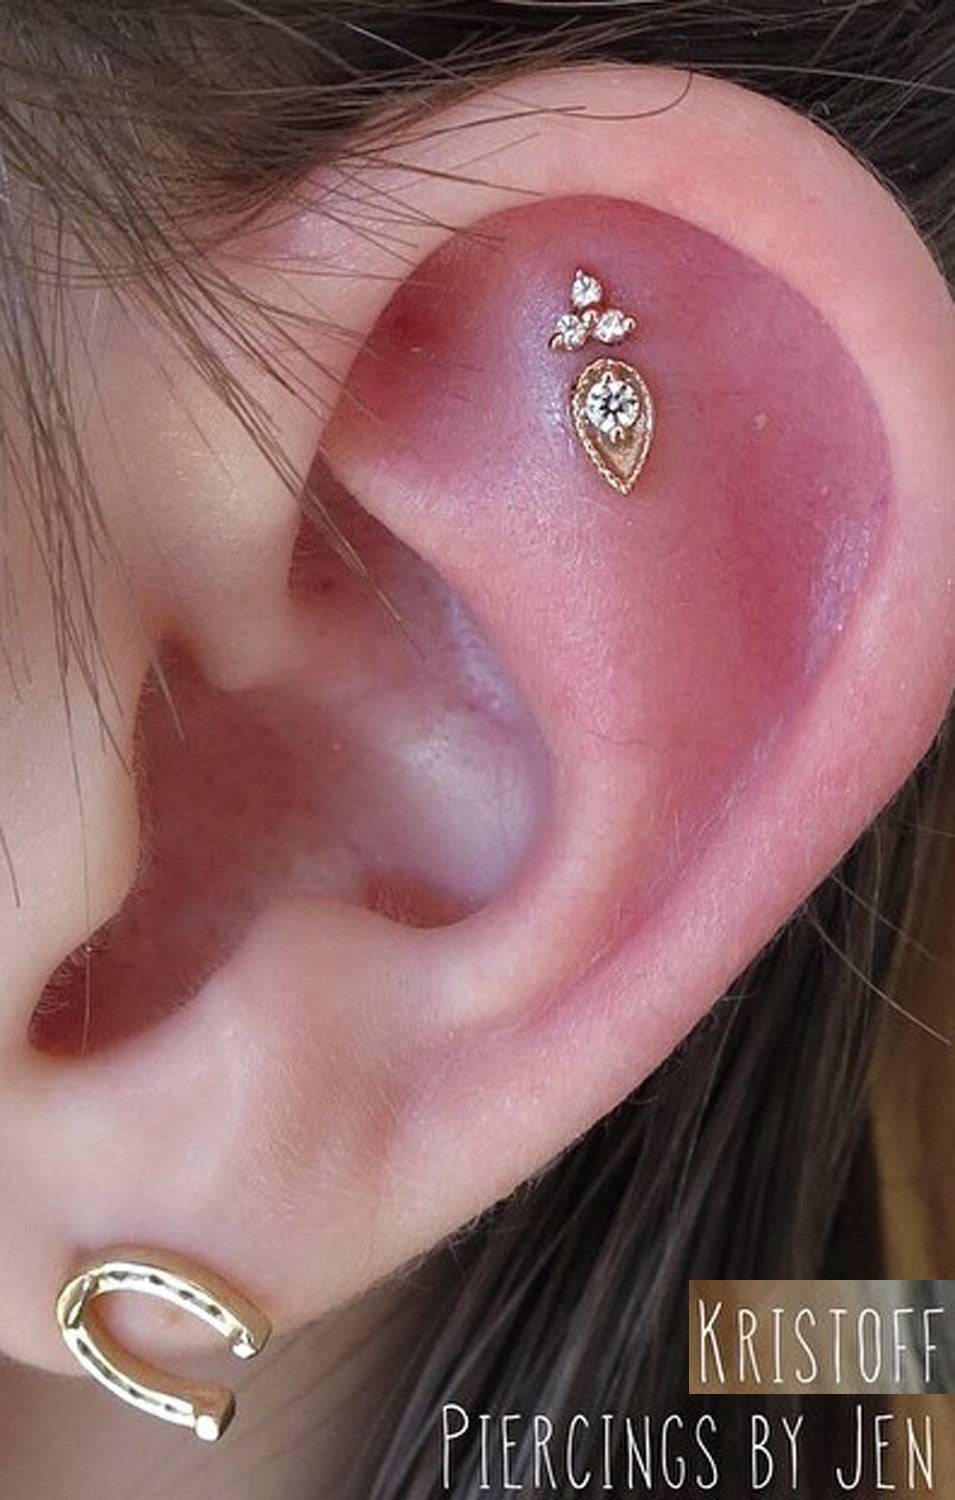 Beautiful Simple Ear Piercing Ideas at MyBodiArt.com - Constellation Piercing - Cartilage Helix Flower Earring Stud